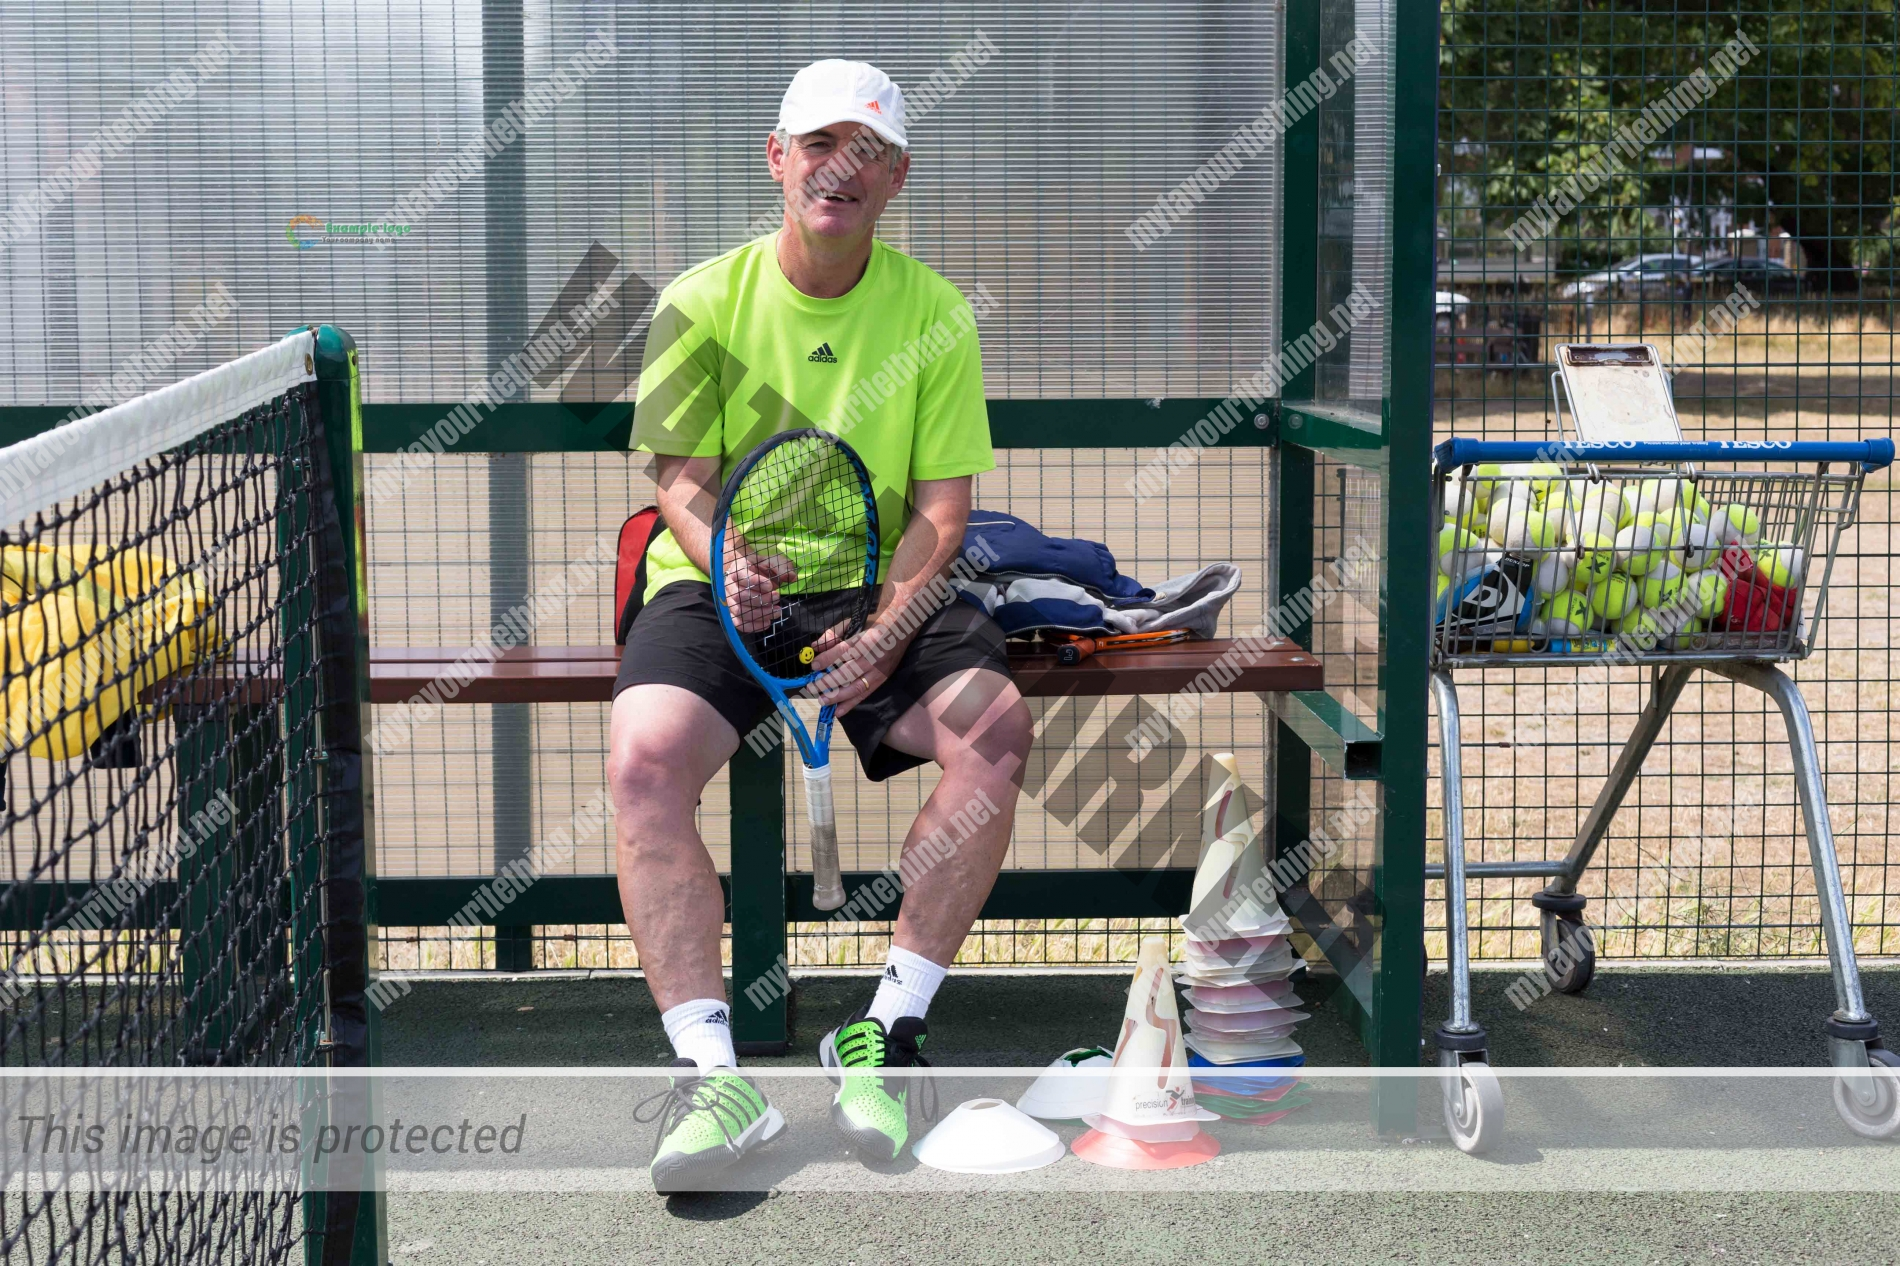 Tennis coach, Julian Cousins sitting on a bench at a tennis court holding a racket